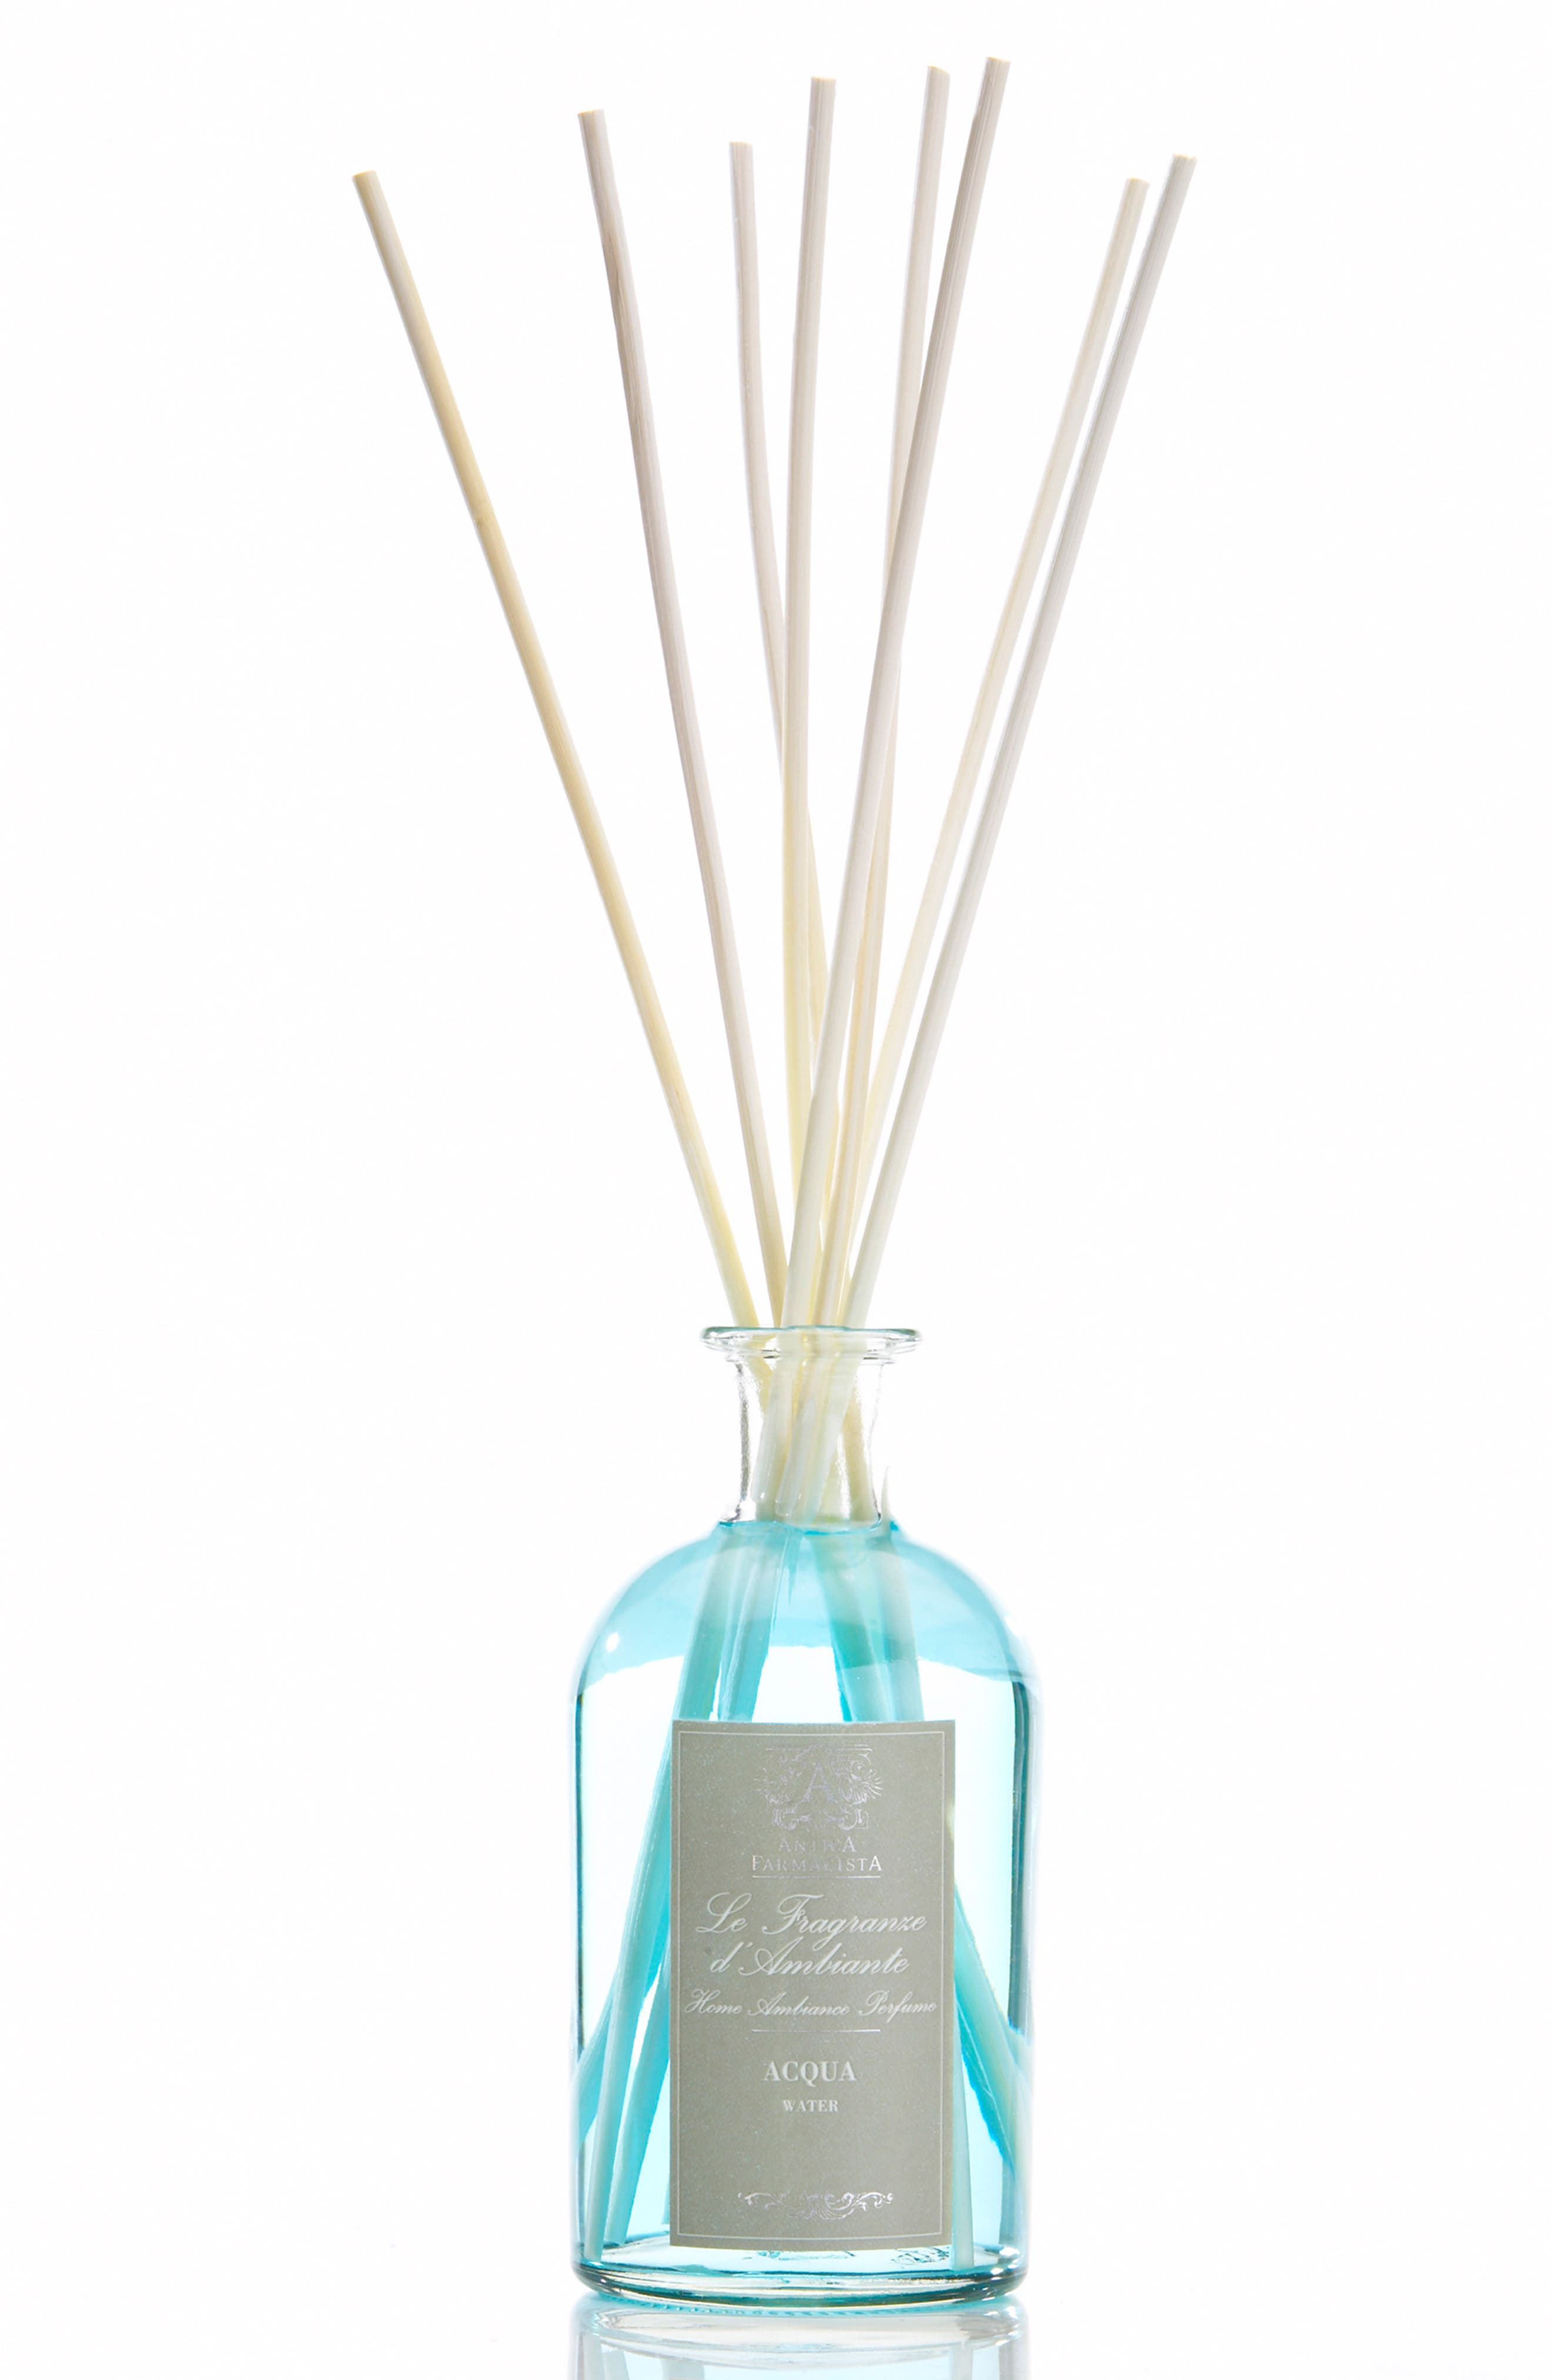 What it is: A reed diffuser presented in an apothecary-inspired bottle filled with fragrance that permeates the air through the bottle\\\'s open neck. Fragrance story: Acqua is a like a delicate sea breeze, blending sweet musk and cool marine algae. Notes: Sweet musk, marine algae. Style Name: Antica Farmacista Acqua Home Ambiance Perfume. Style Number: 250359. Available in stores.